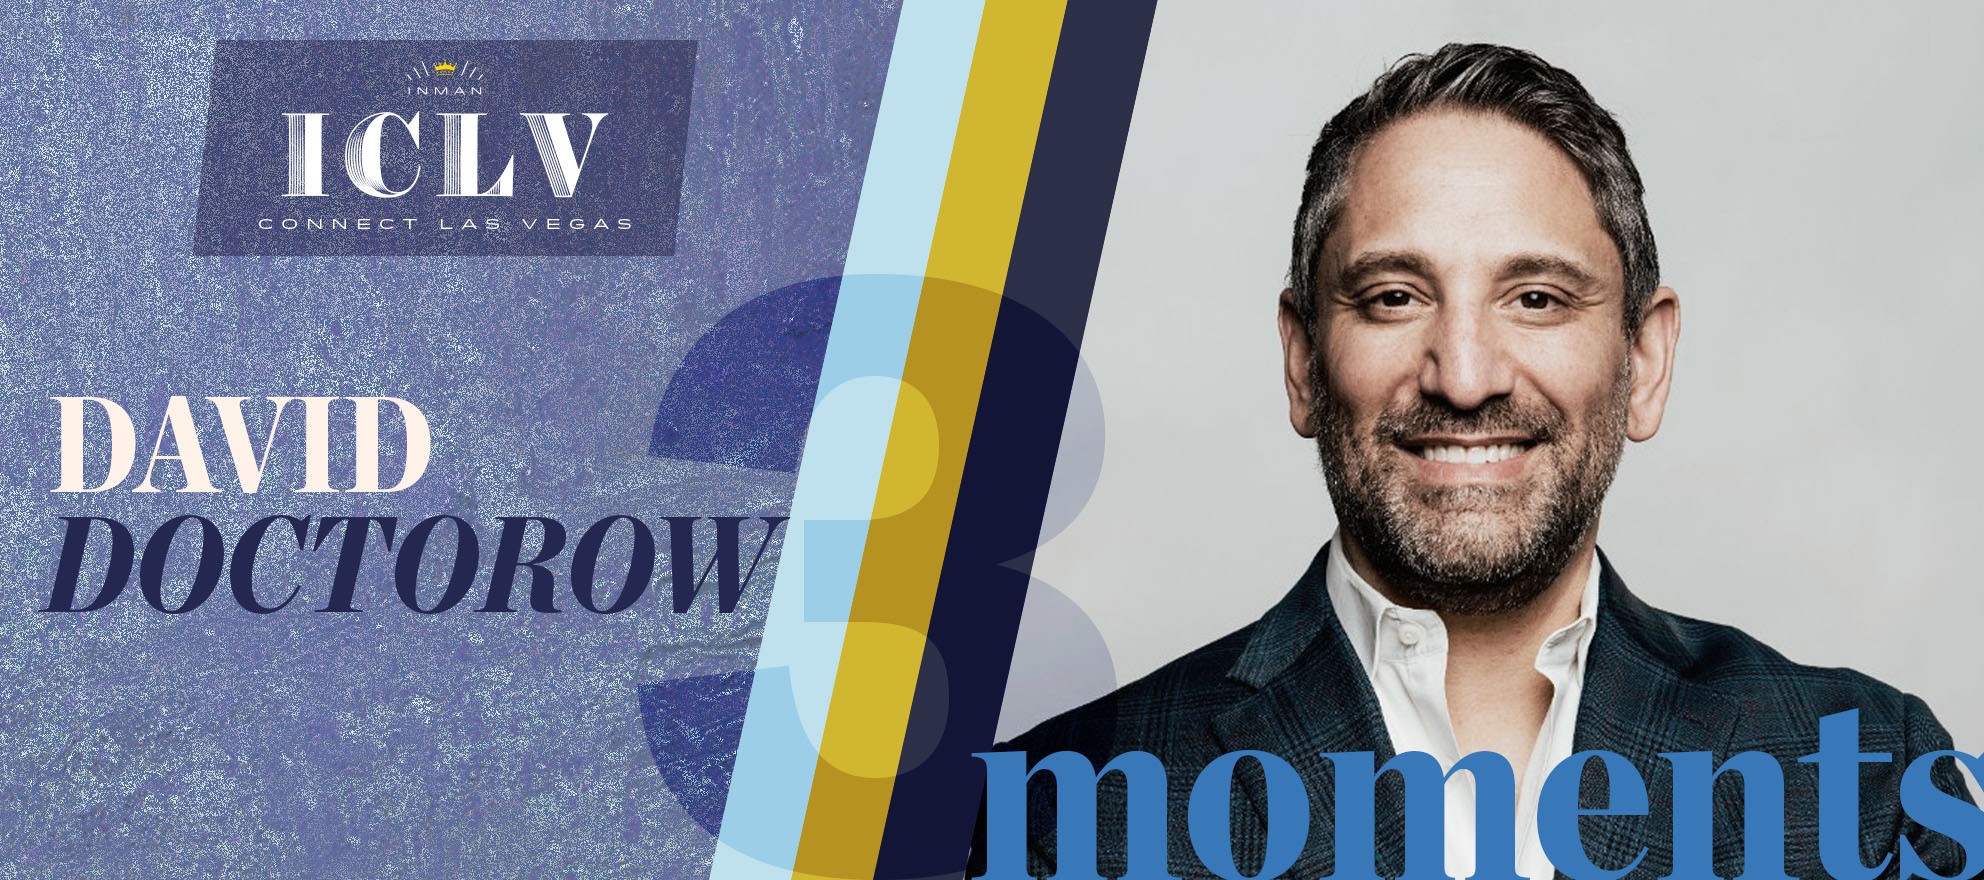 3 moments that made Move Inc. CEO David Doctorow